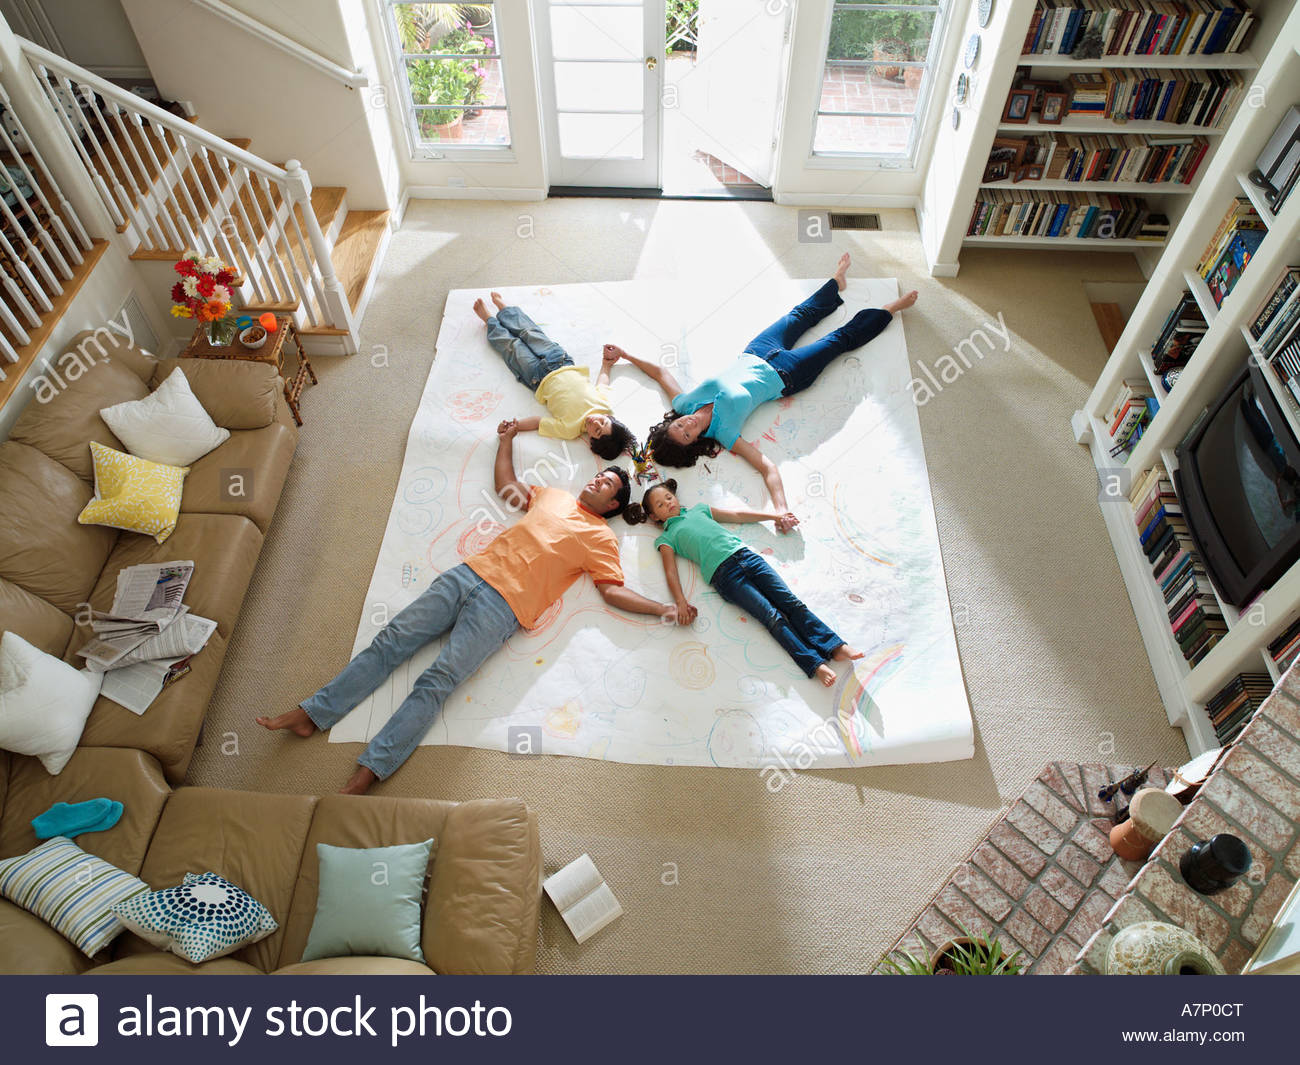 Family lying together on large piece of paper laid out on living room floor overhead view - Stock Image